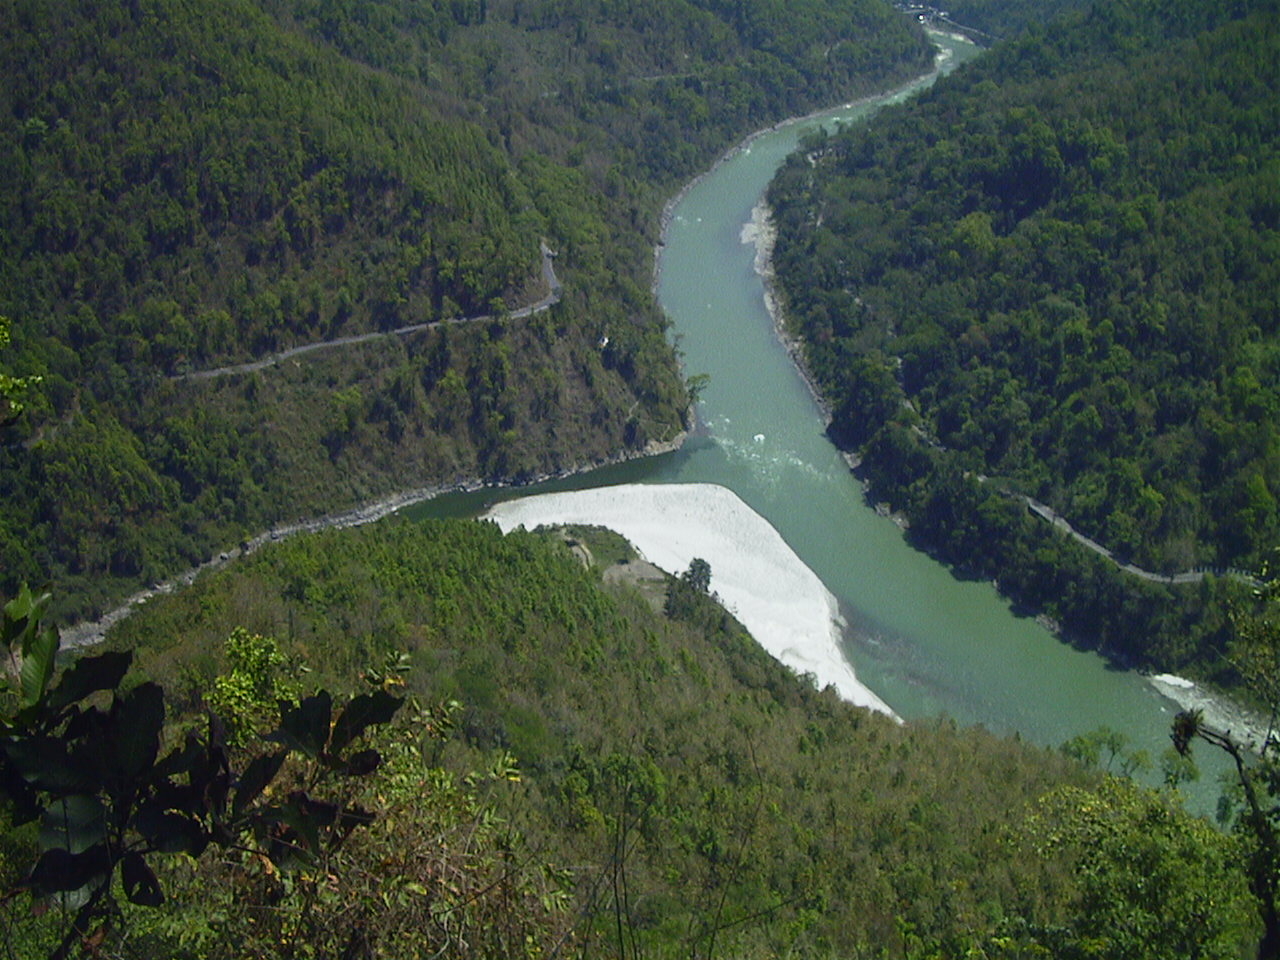 The Teesta river. Credit: Prato9x/Flickr CC BY-NC-ND 2.0